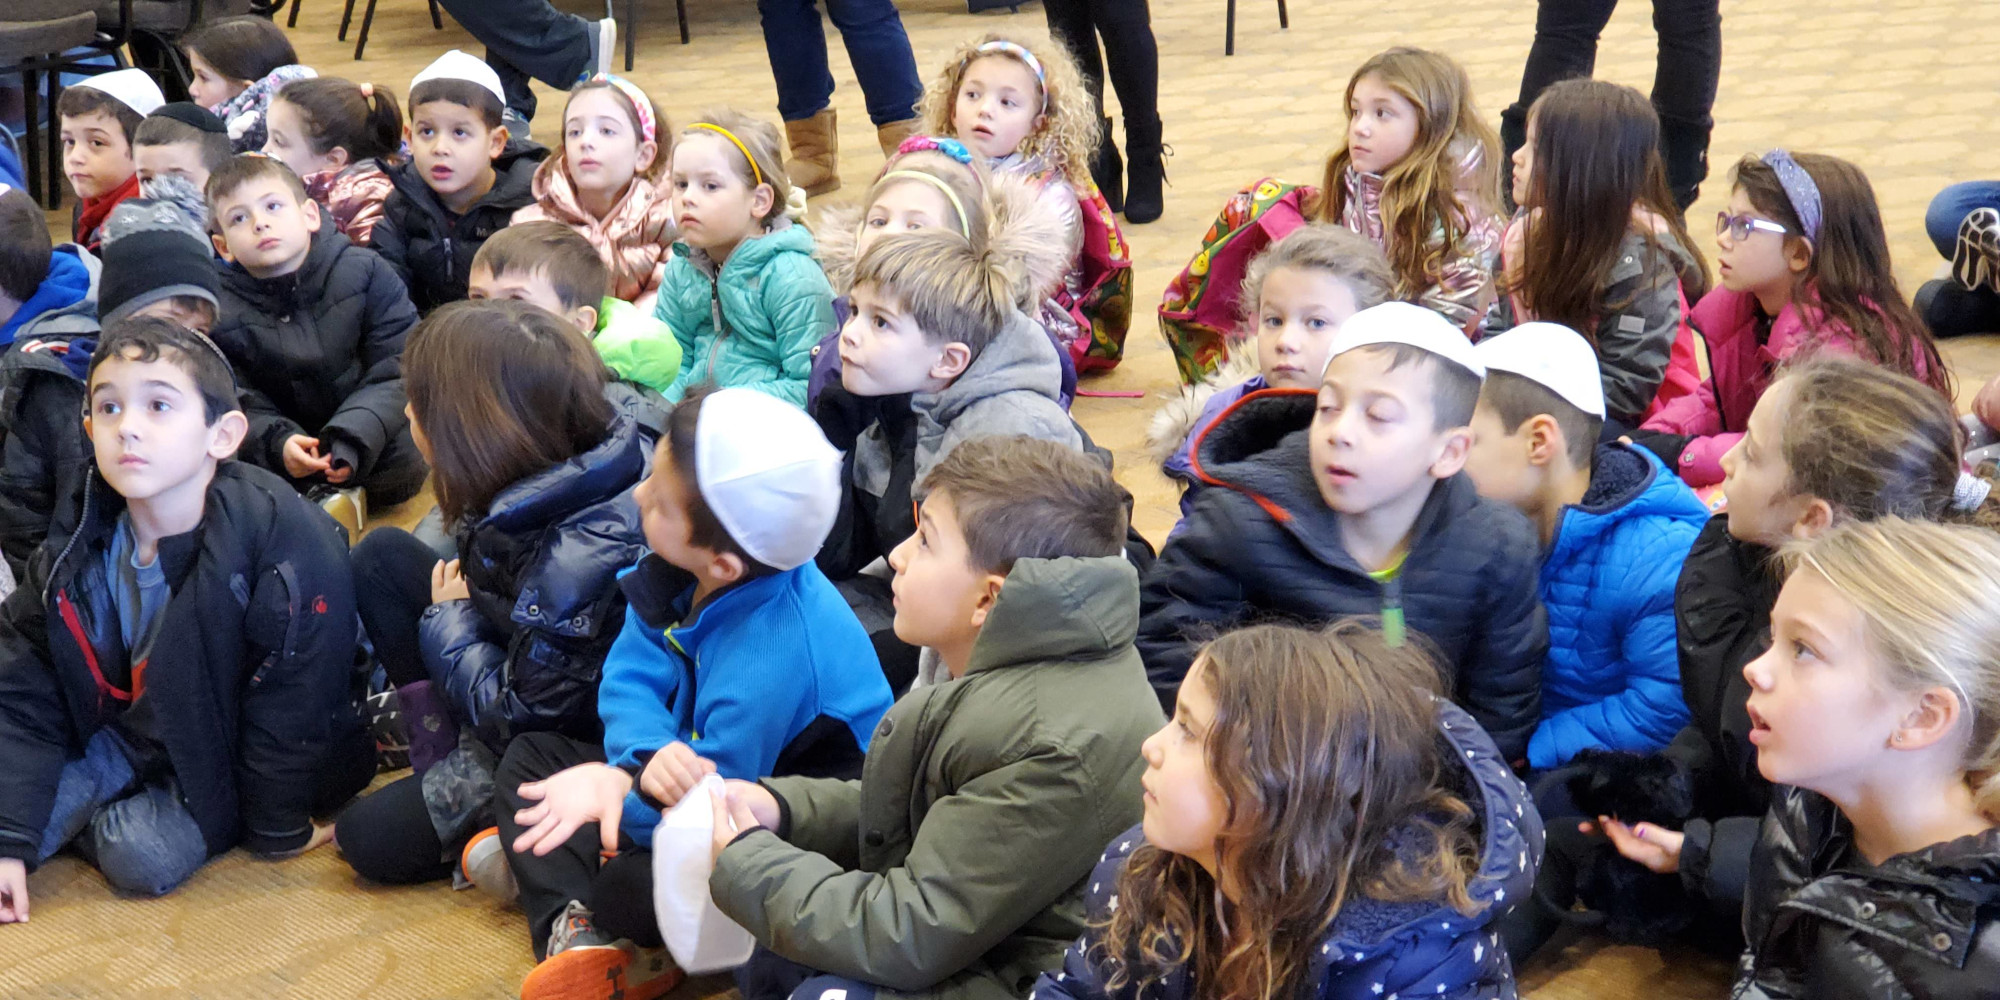 """<span class=""""slider_title"""">                                     We're Writing a Torah This Year                                </span>                                                                                                                                                                                       <span class=""""slider_description"""">And the children are learning about this time-honored mitzvah</span>"""